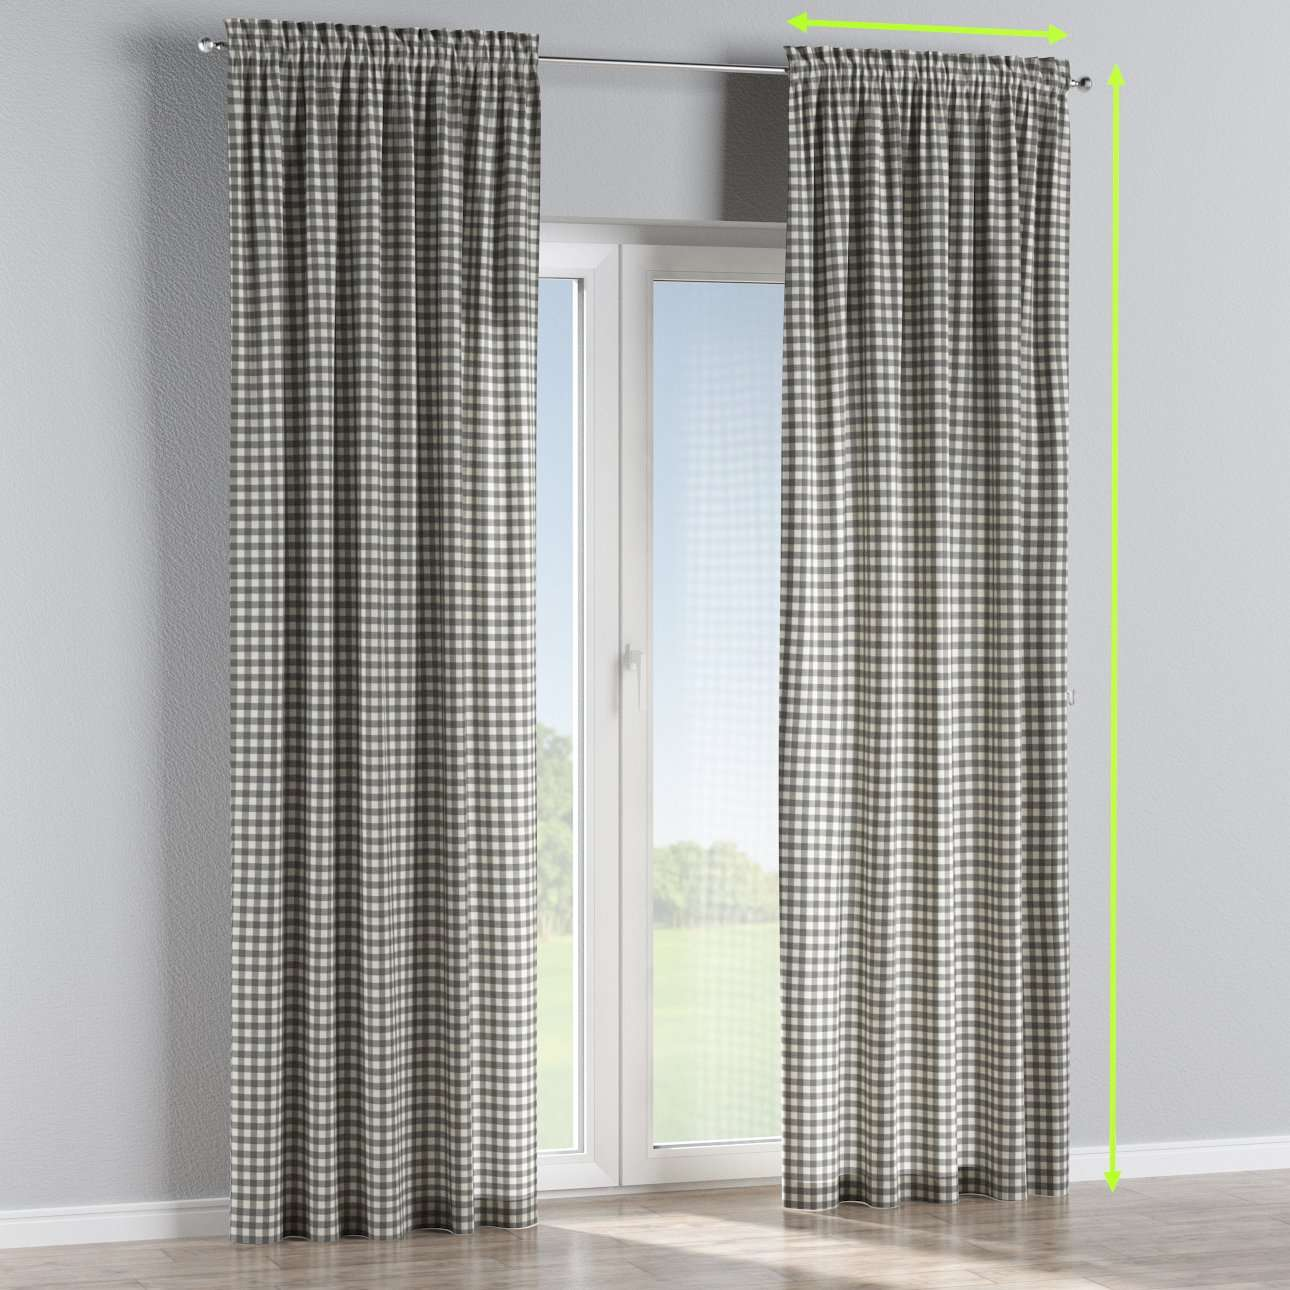 Slot and frill lined curtains in collection Quadro, fabric: 136-11